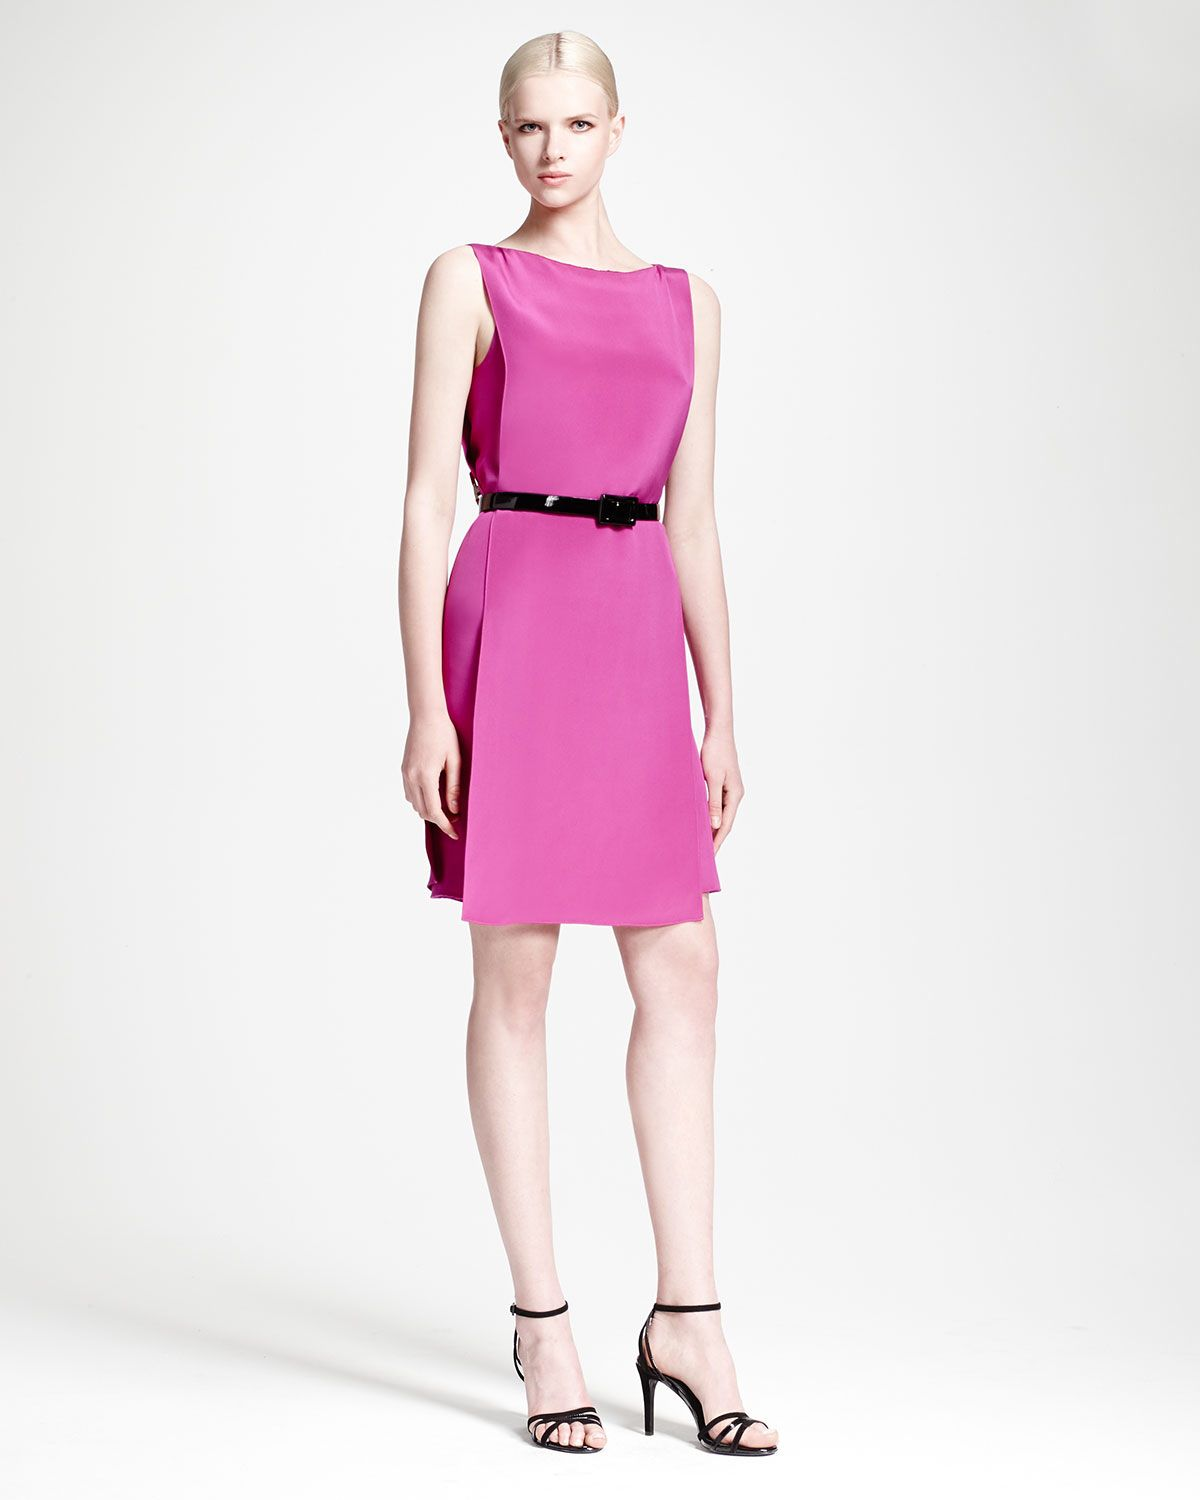 Ralph Lauren | Dresses/skirts/pantyhose | Pinterest